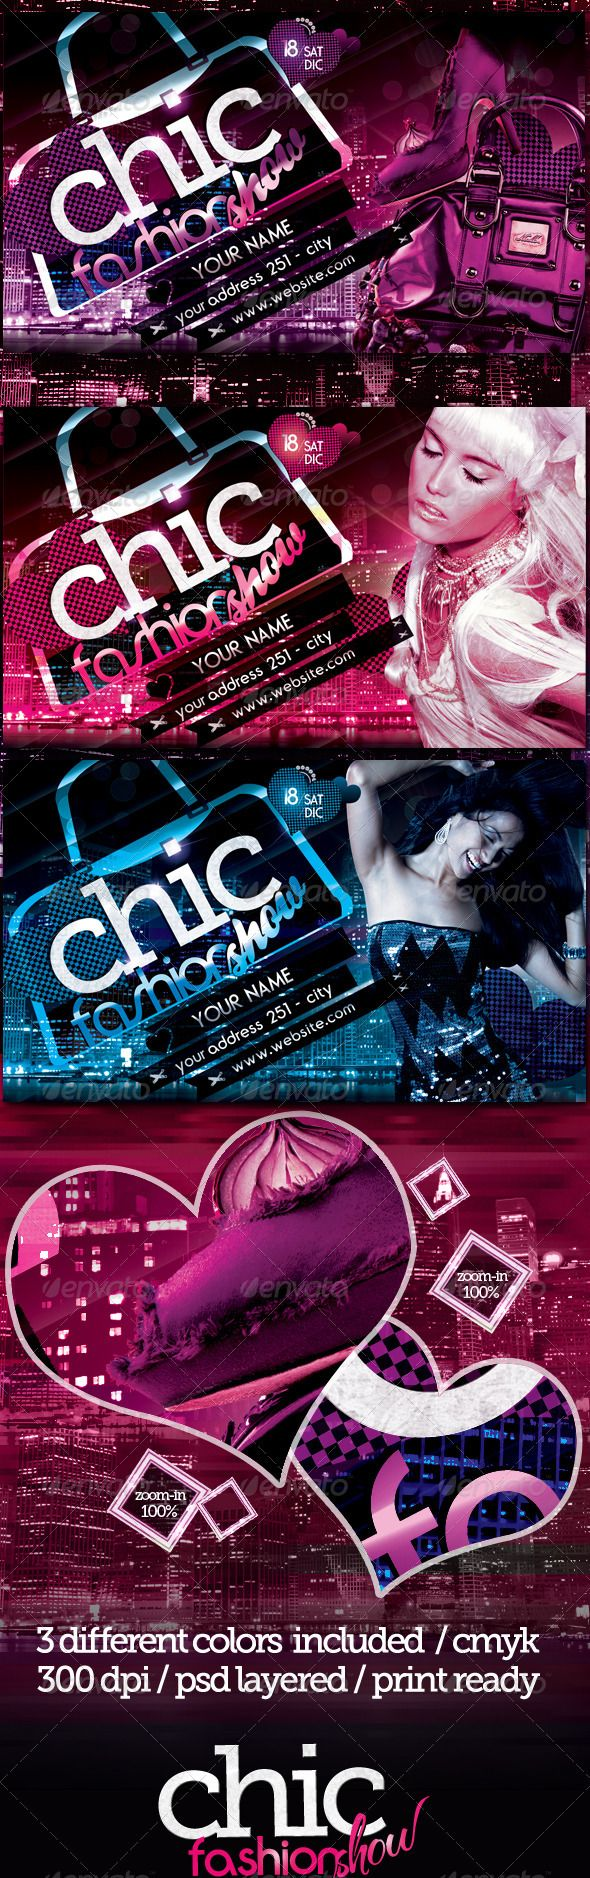 Chic Fashion Show Flyer Template This Flyer Is Perfect For - Fashion show flyer template